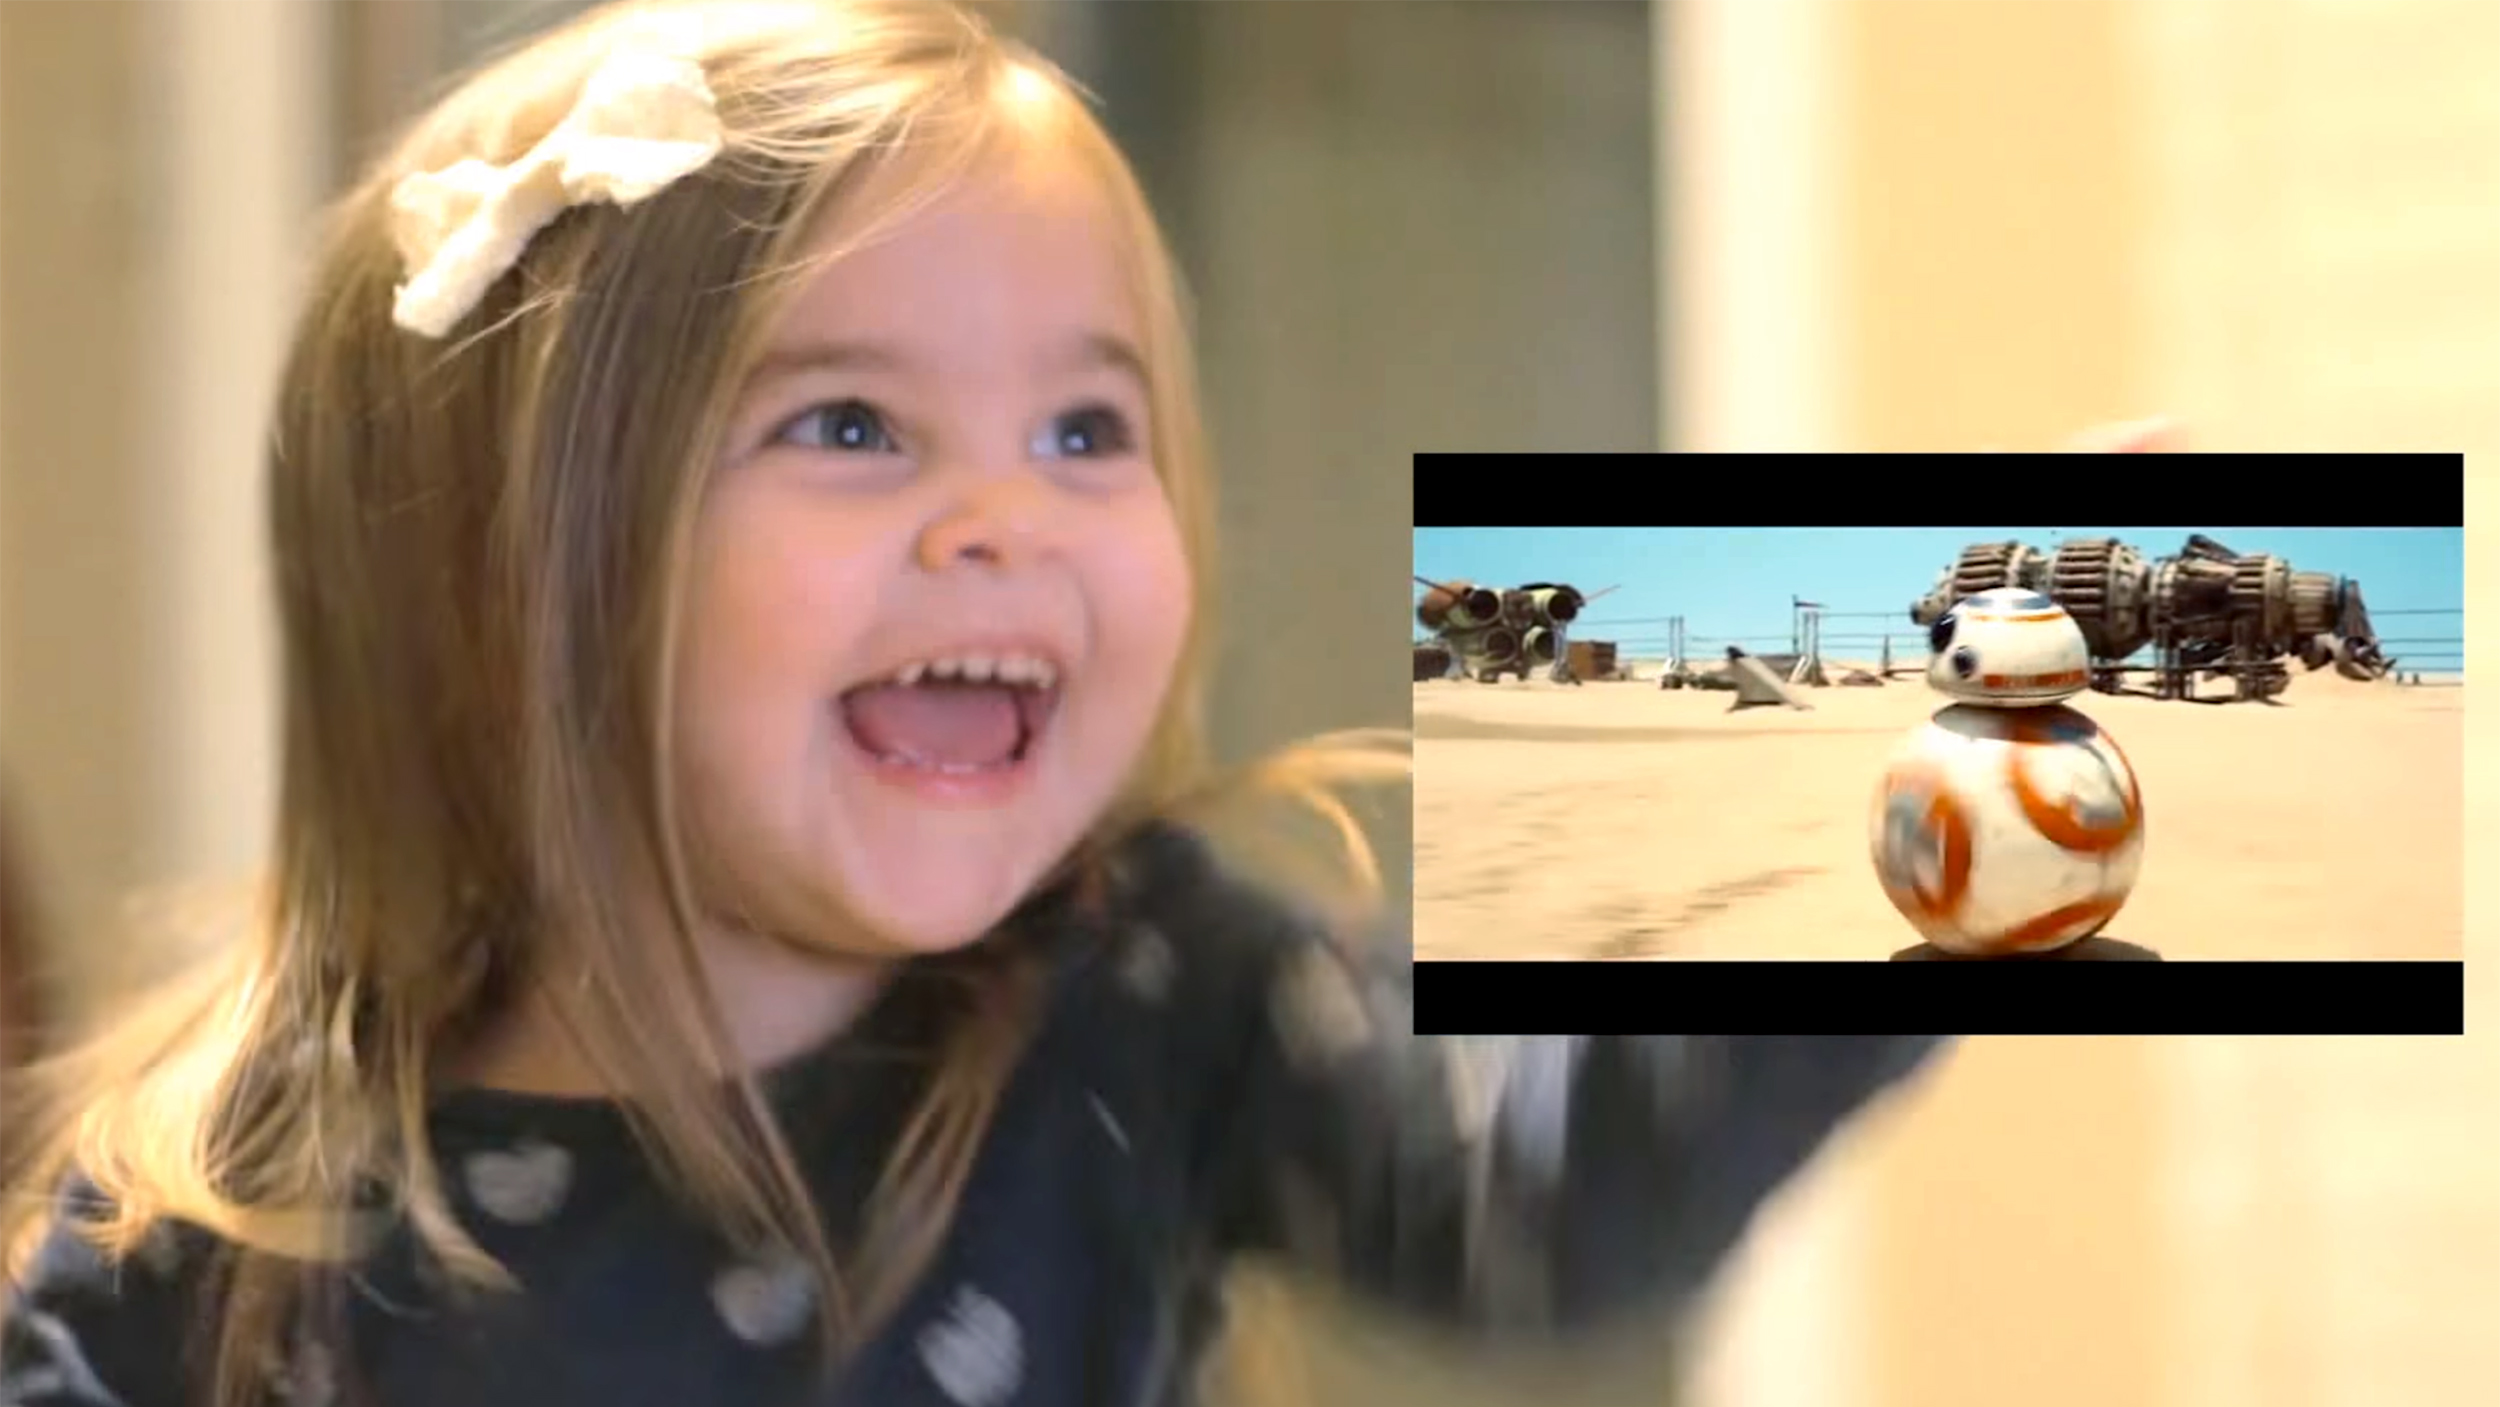 Little Girl Watching Star Wars The Force Awakens Trailer Has - Little girls reaction to seeing her parents clearly for the first time is adorable